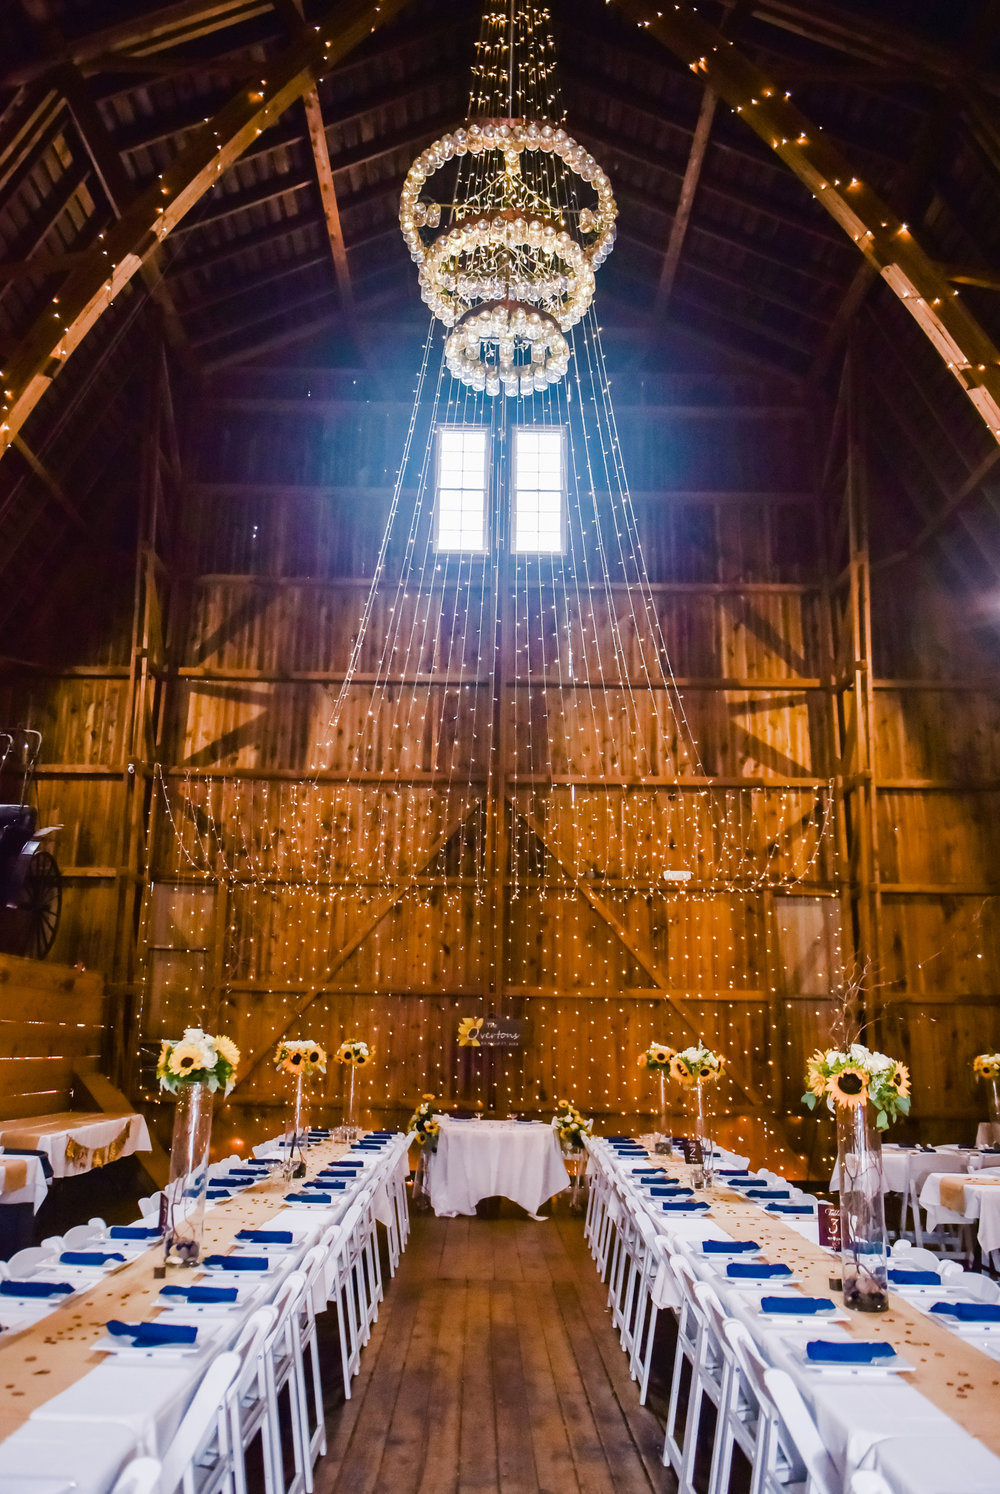 Cobblestone_Wedding_Barn_Rochester_Wedding_JILL_STUDIO_Rochester_NY_Photographer_DSC_7127.jpg